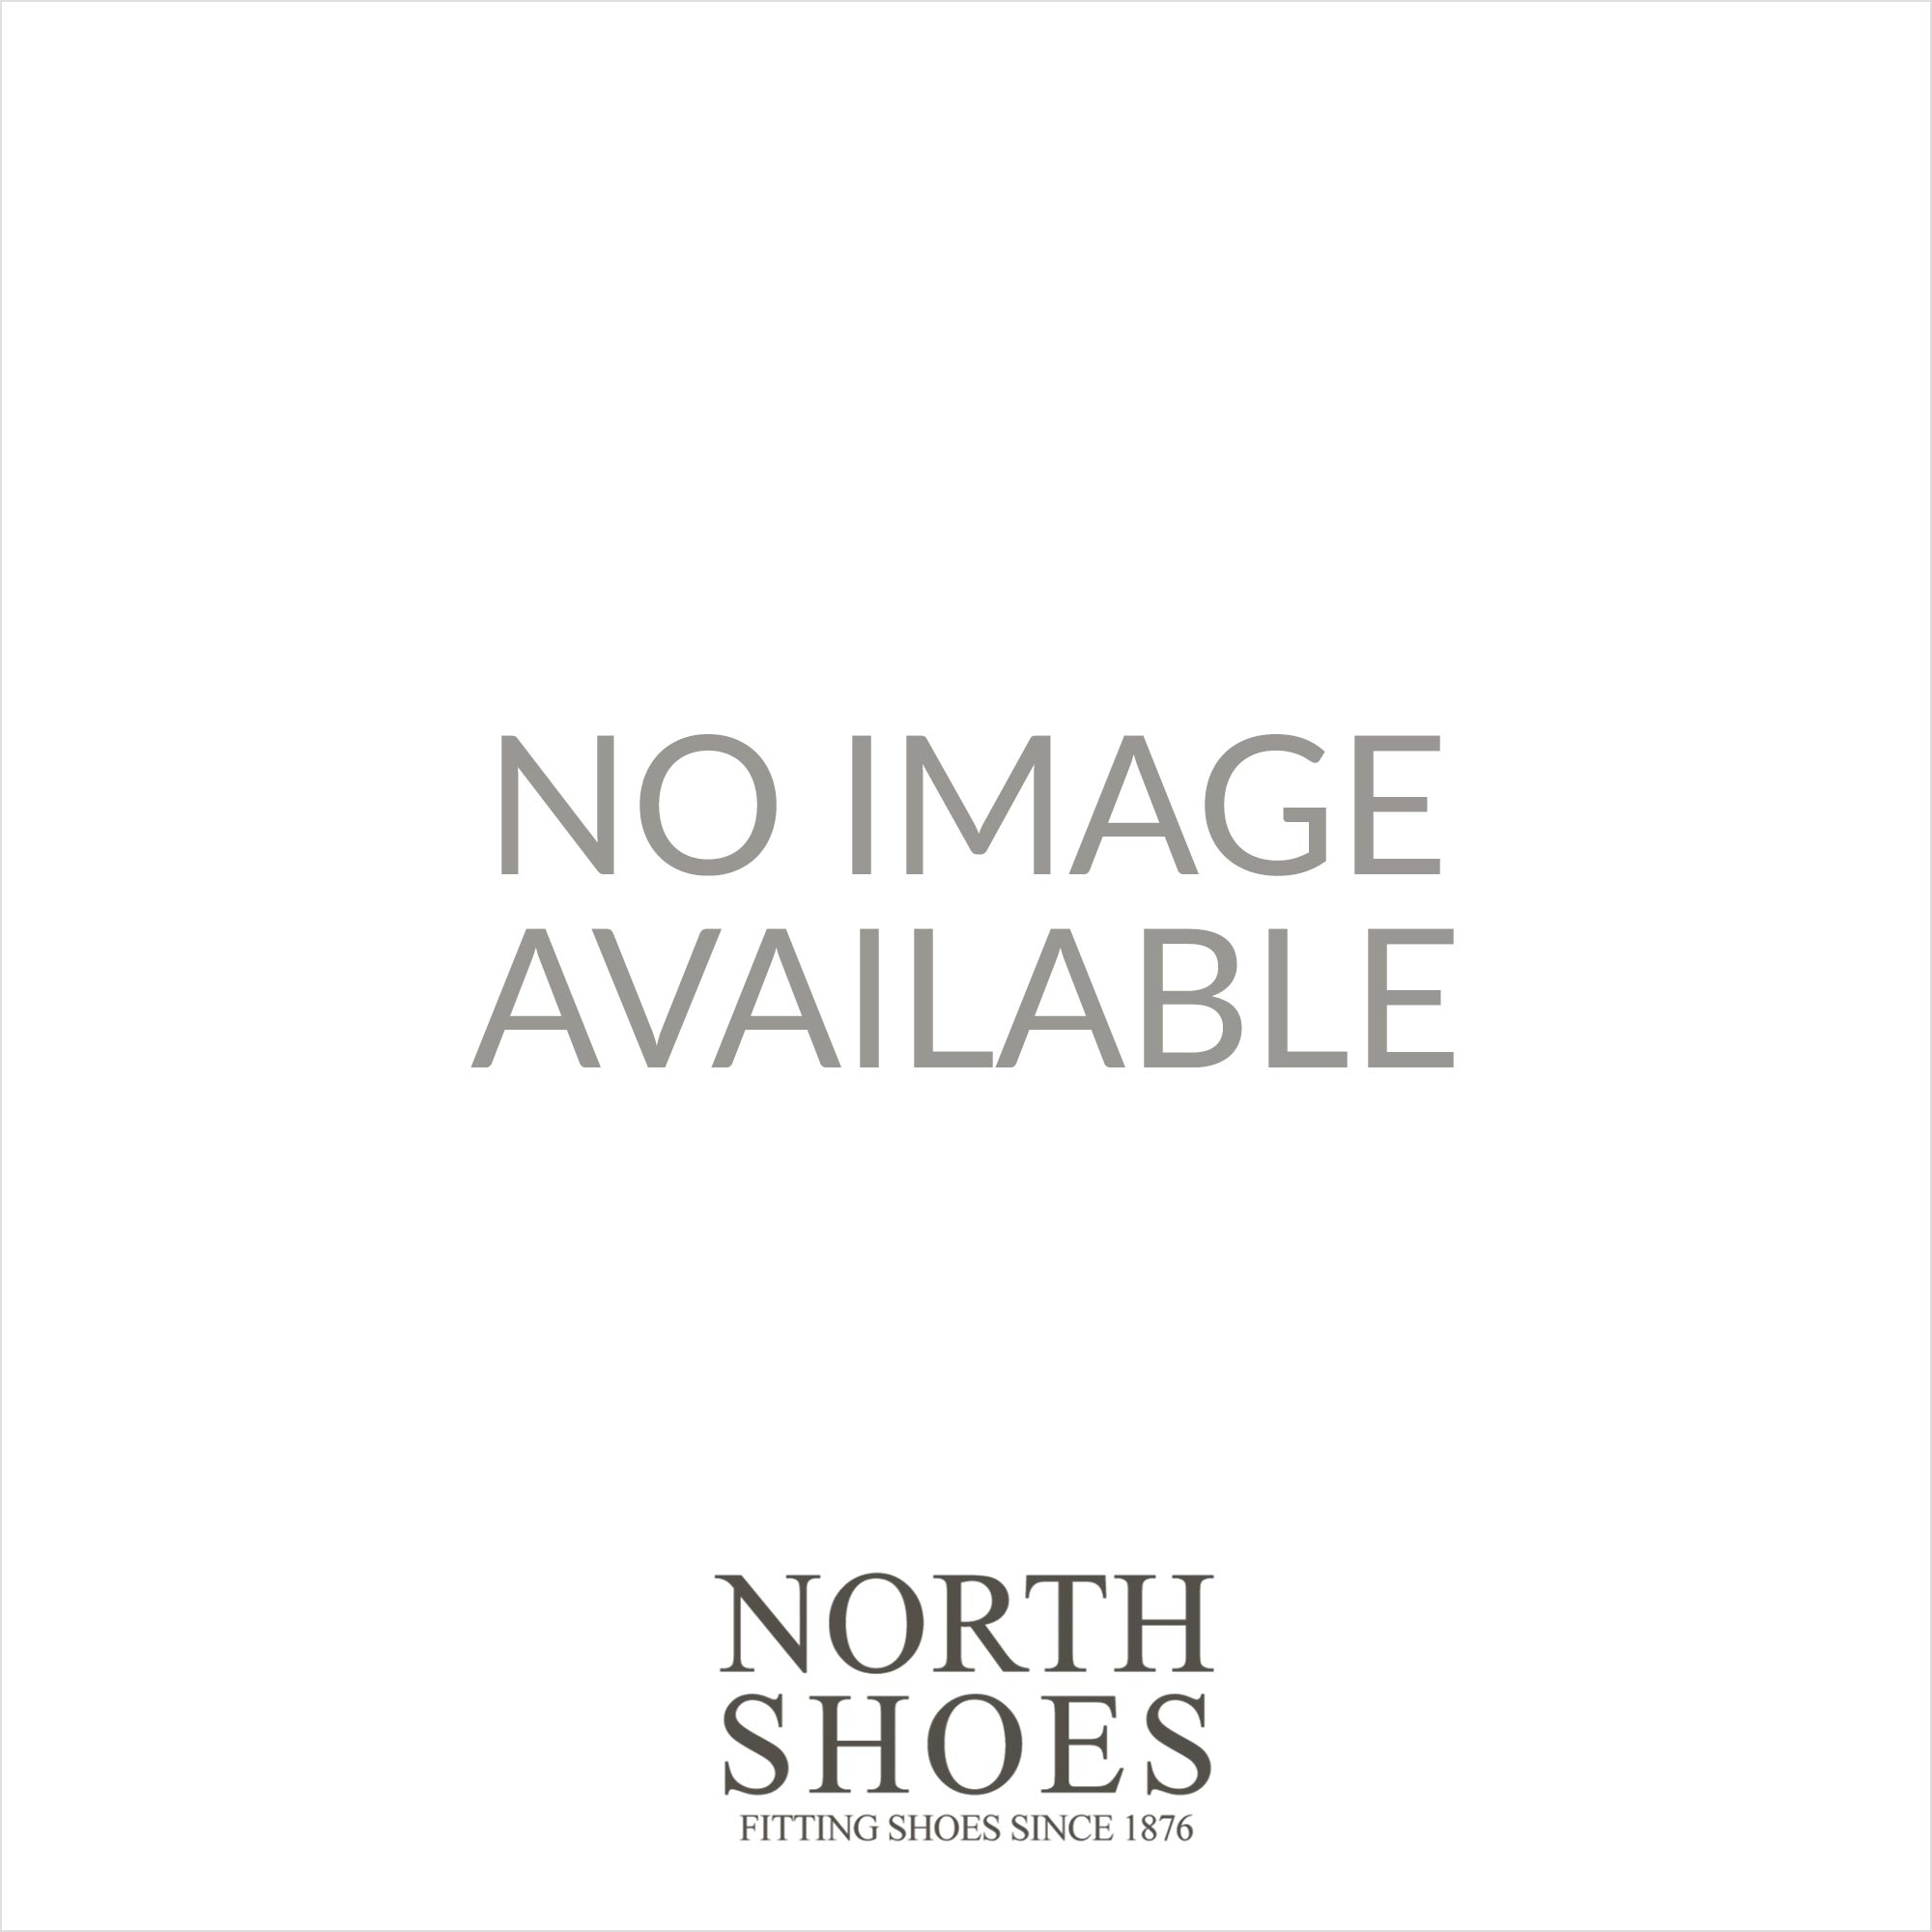 Franjo 4422300-480 Grey Nubuck Leather Boys Lace Up Sneaker Boots - UK 8